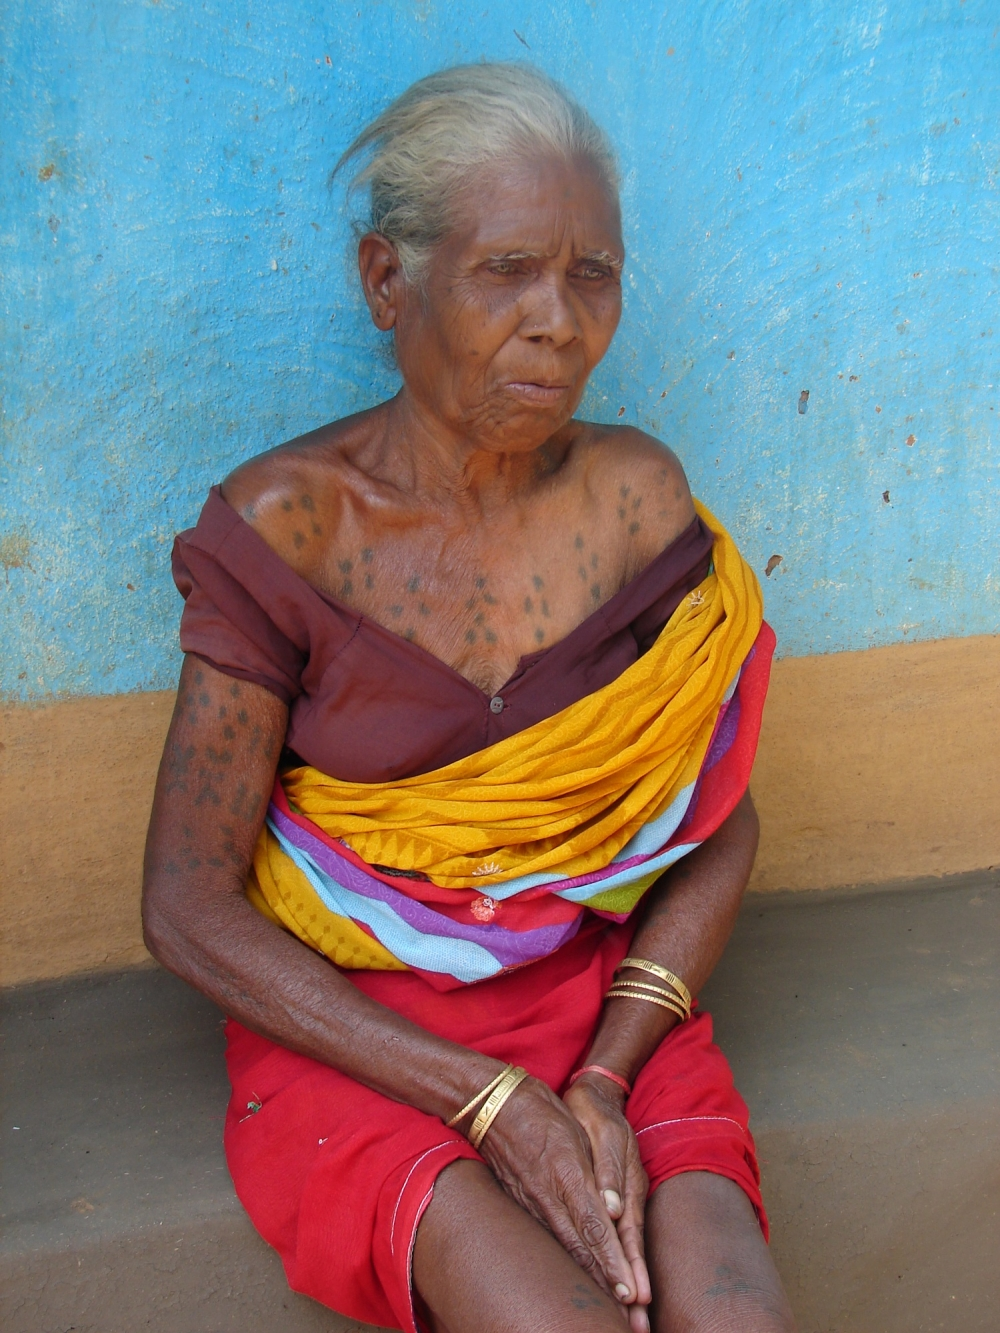 A woman with godna on her chest and hands